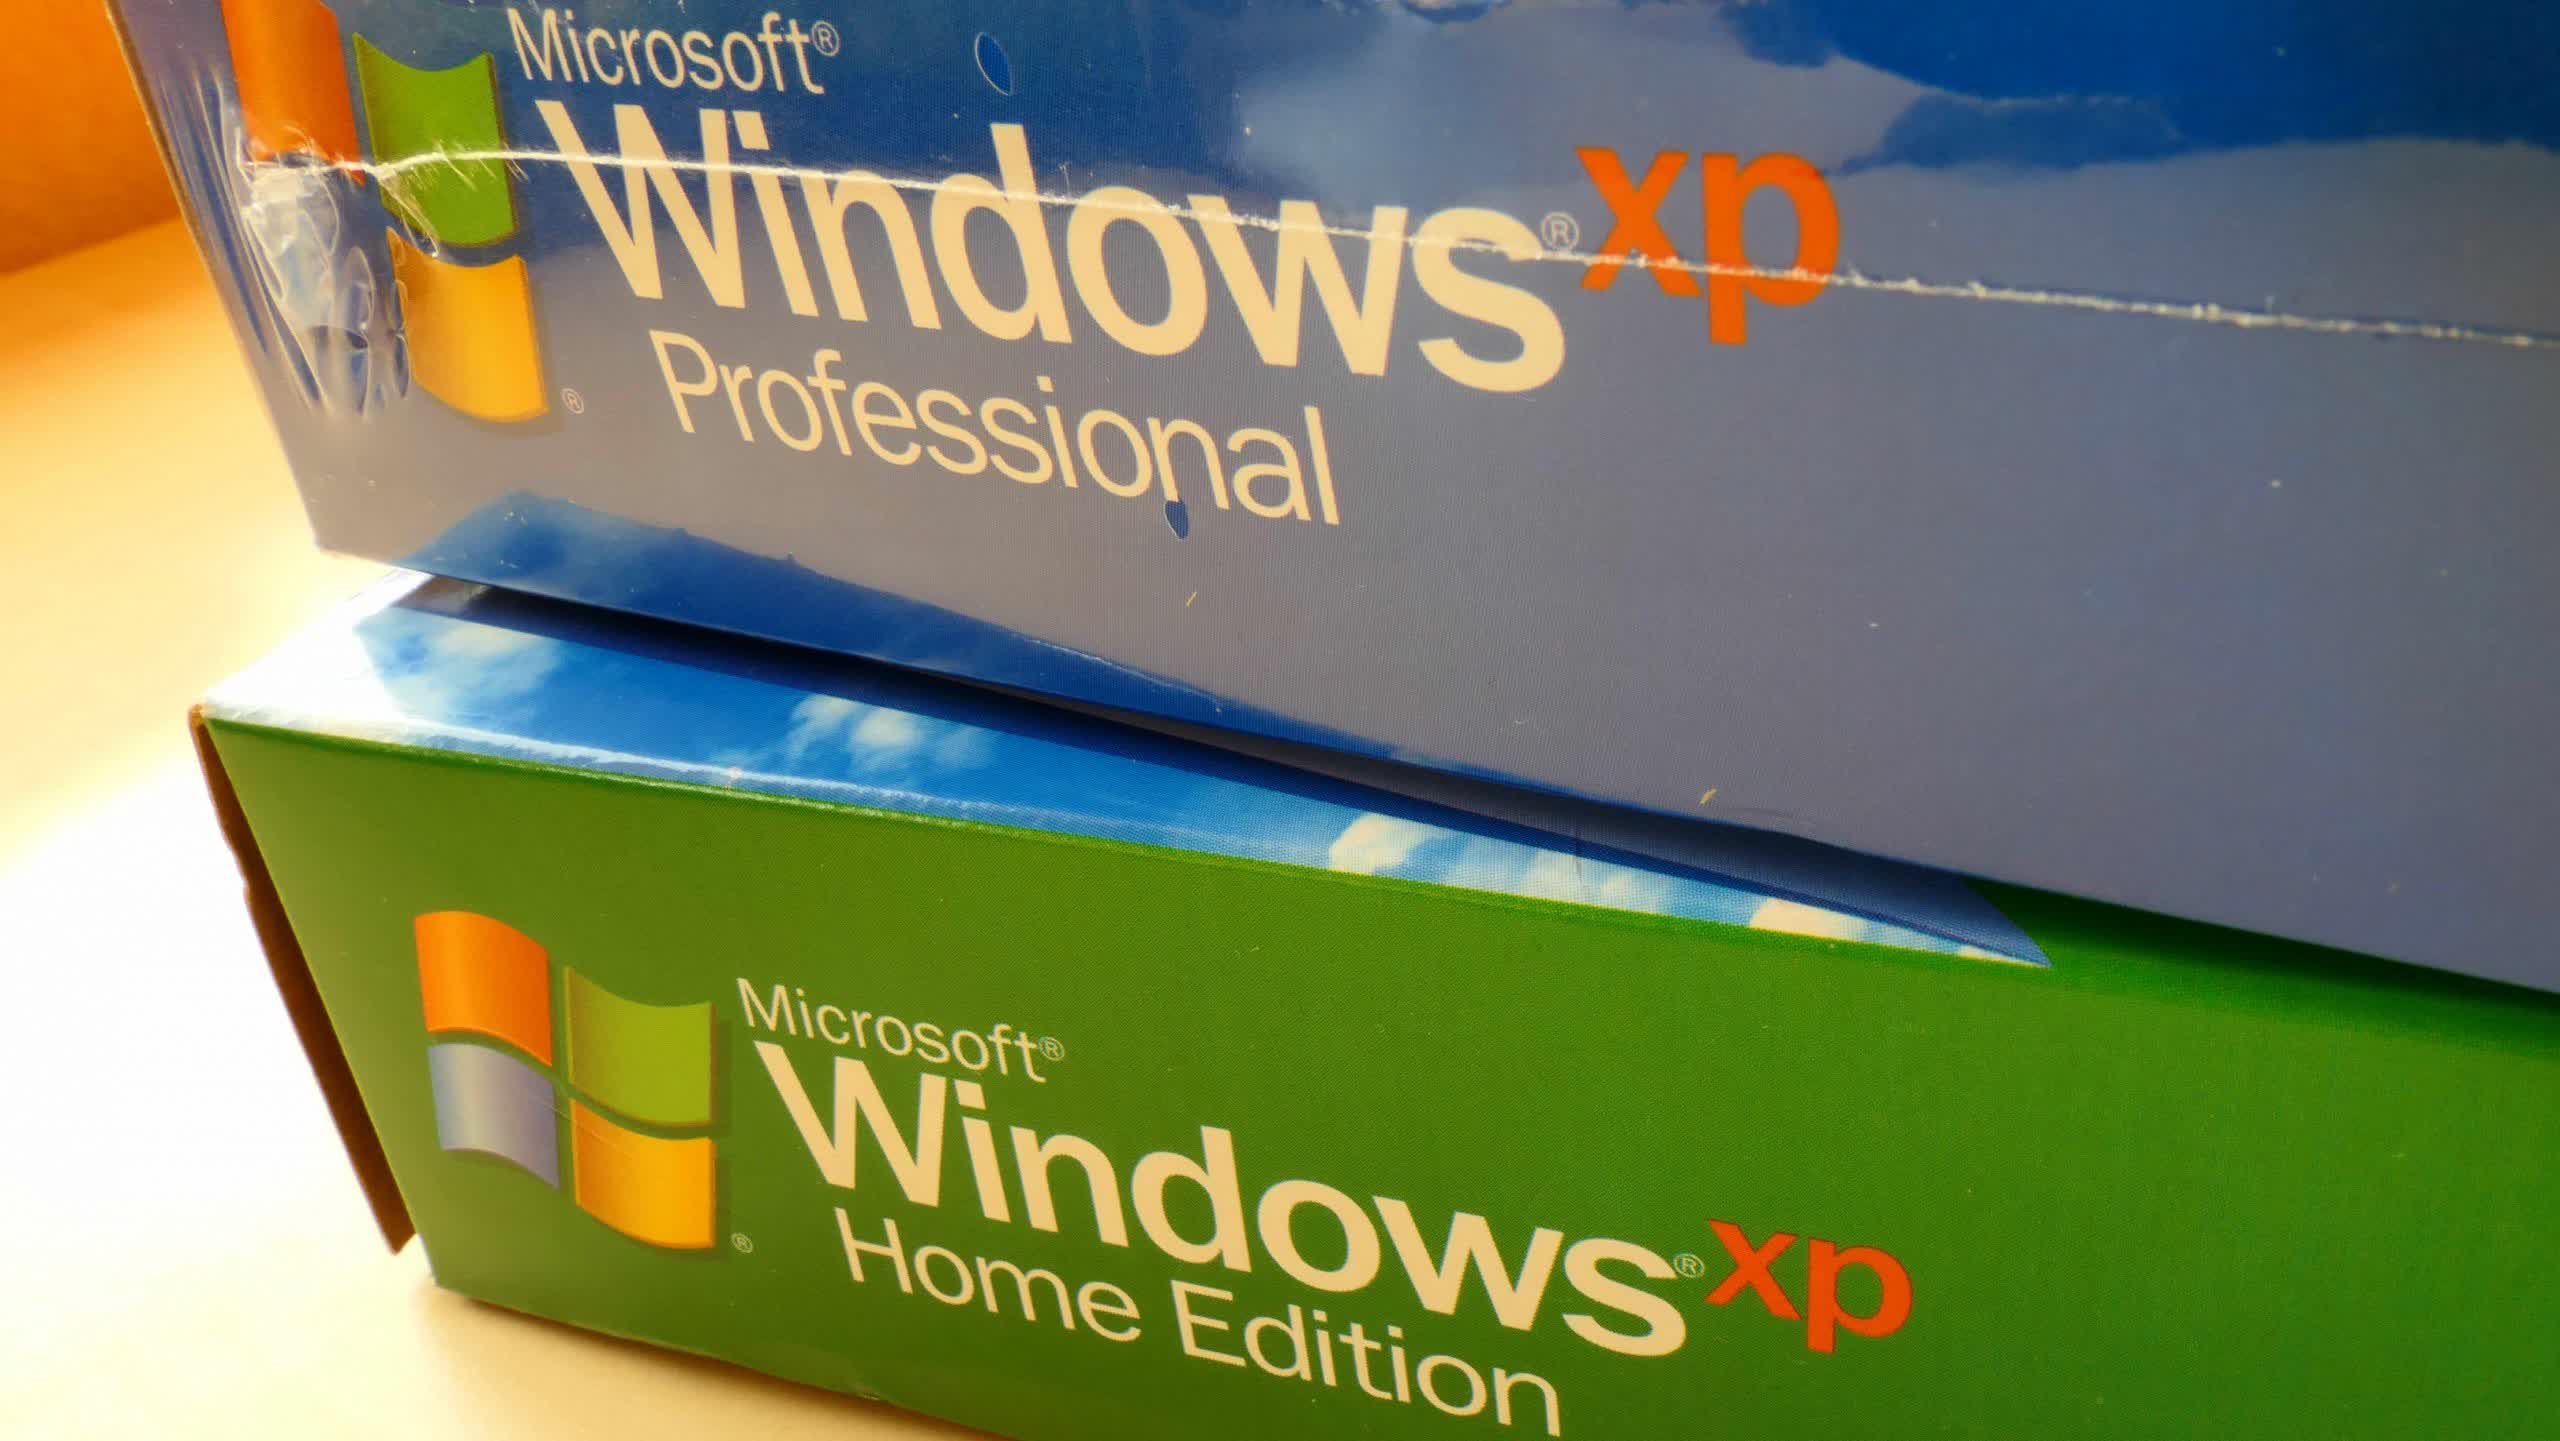 Windows XP source code has spilled out onto the internet